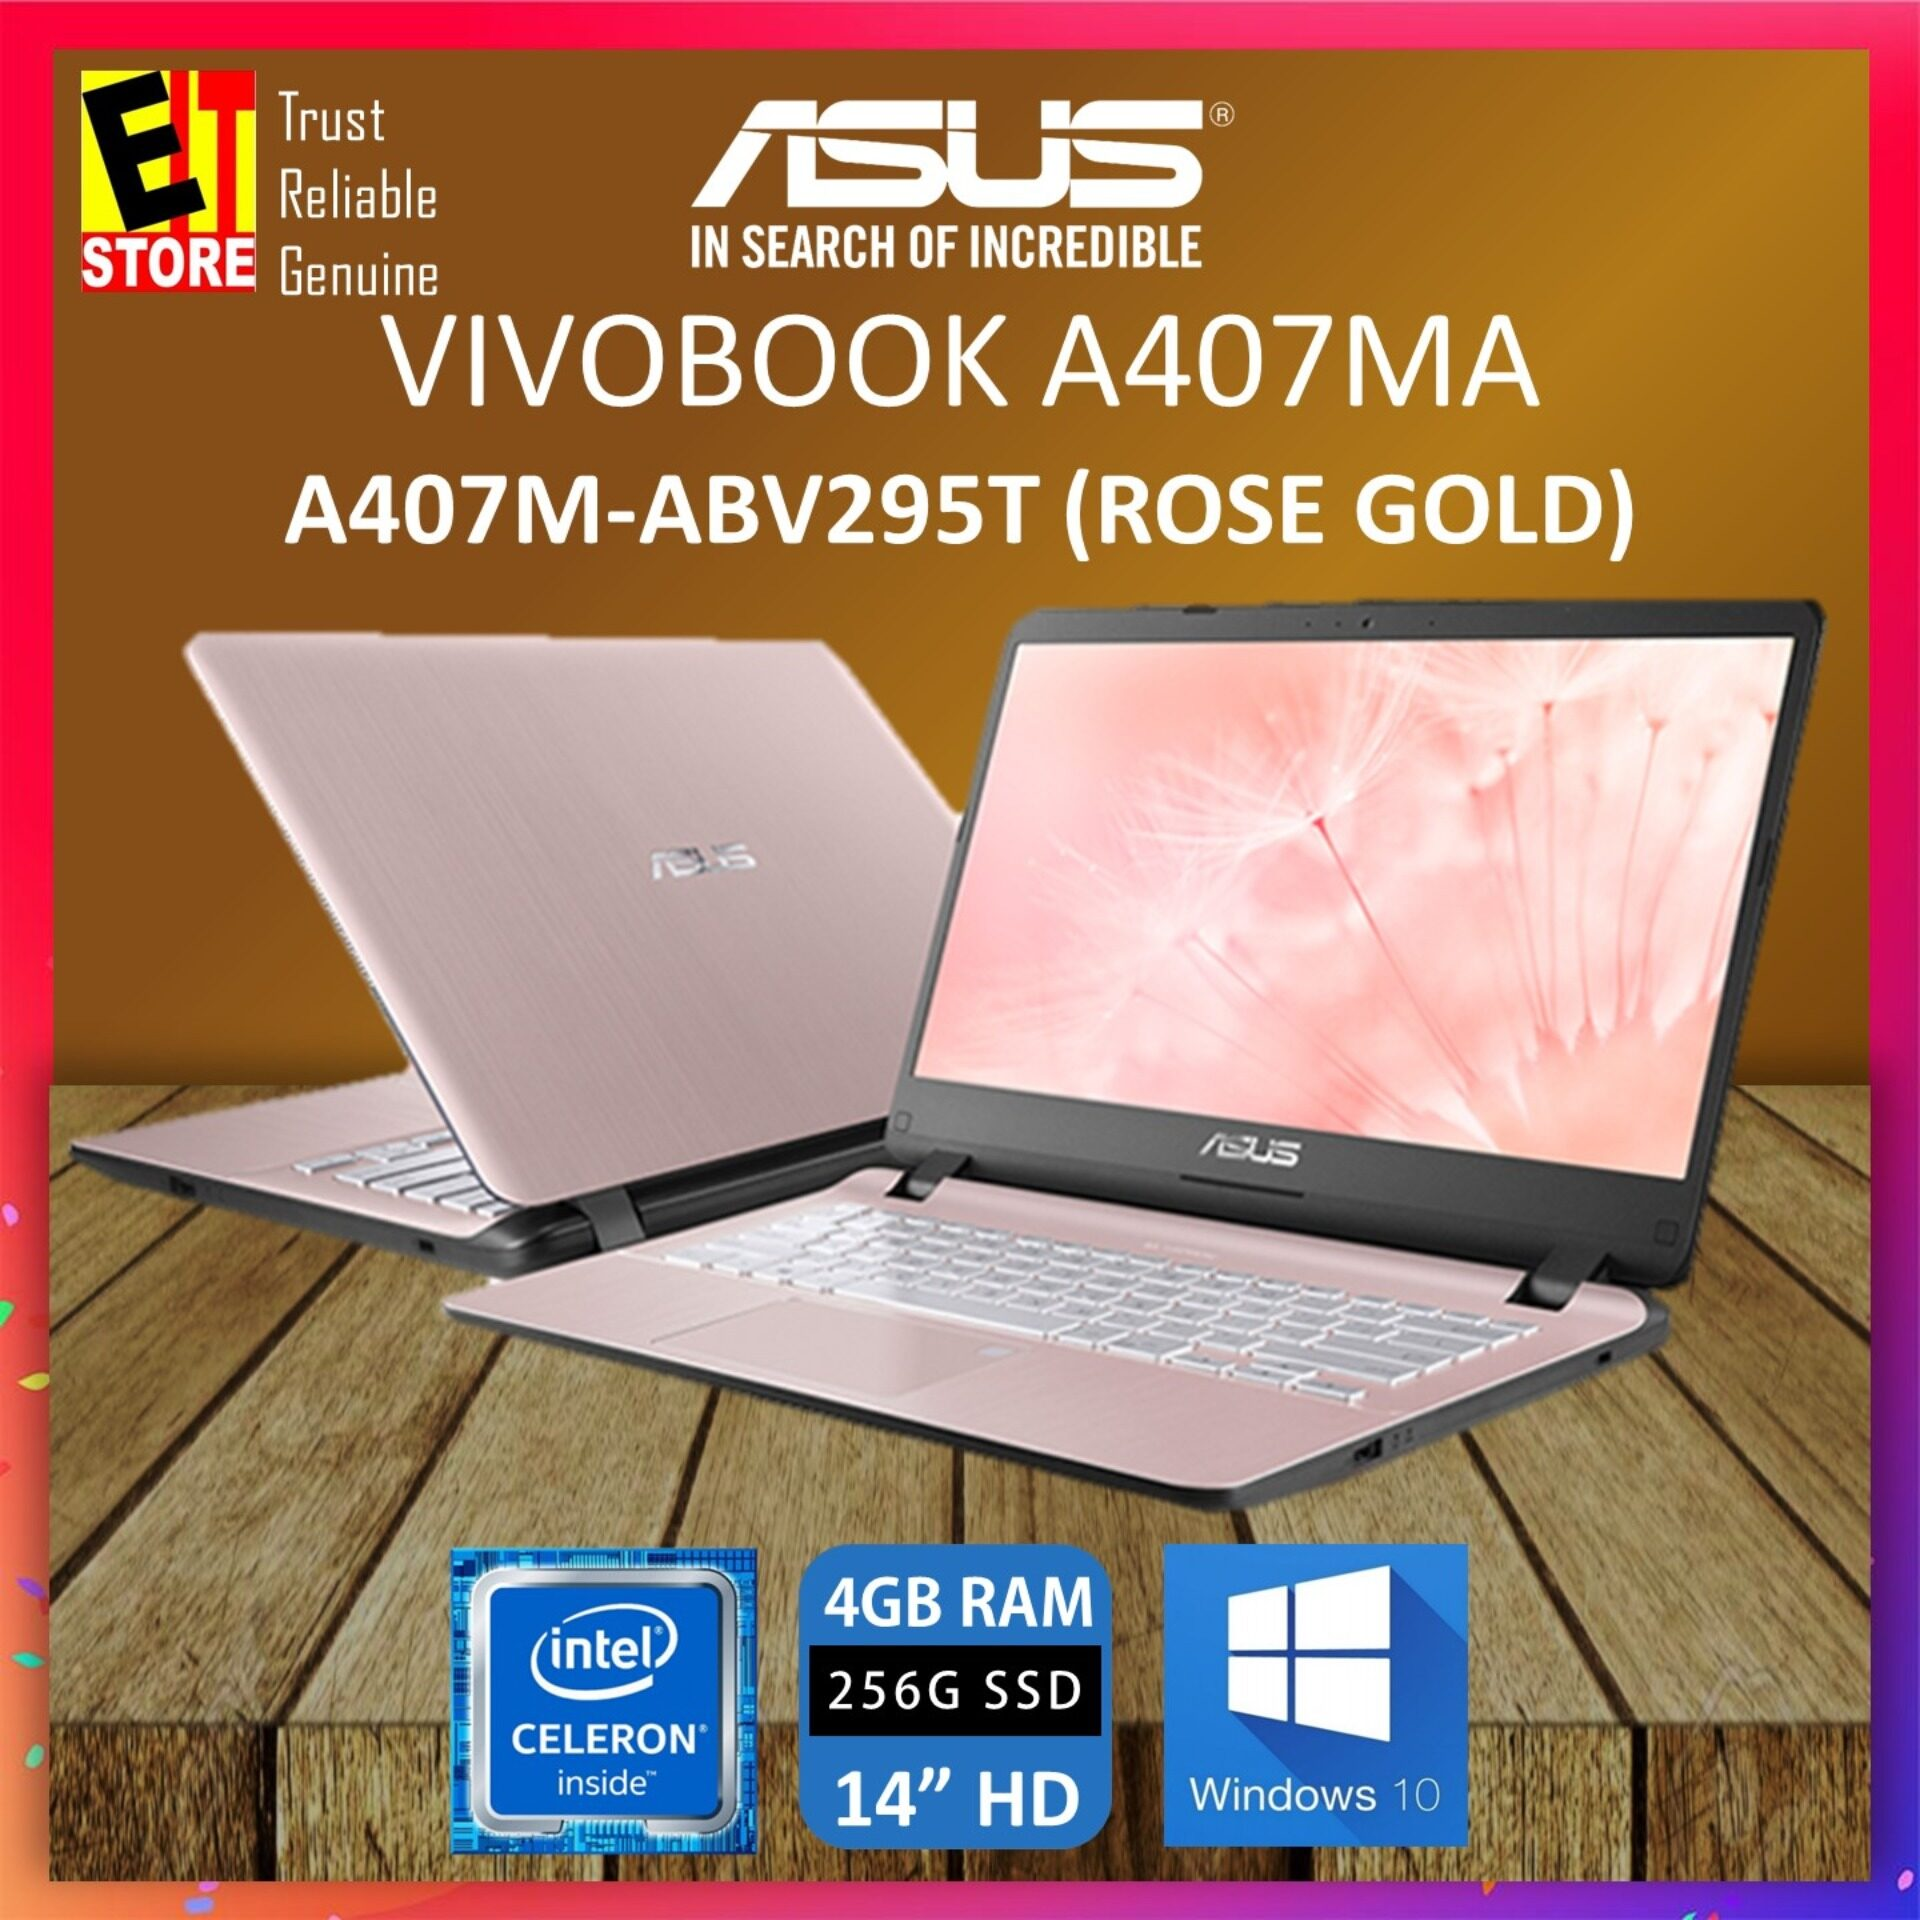 ASUS VIVOBOOK A407M-ABV295T ROSE GOLD LAPTOP (CELERON N4000,4GB,256GB SSD,14 ,W10,1YR) + BACKPACK Malaysia